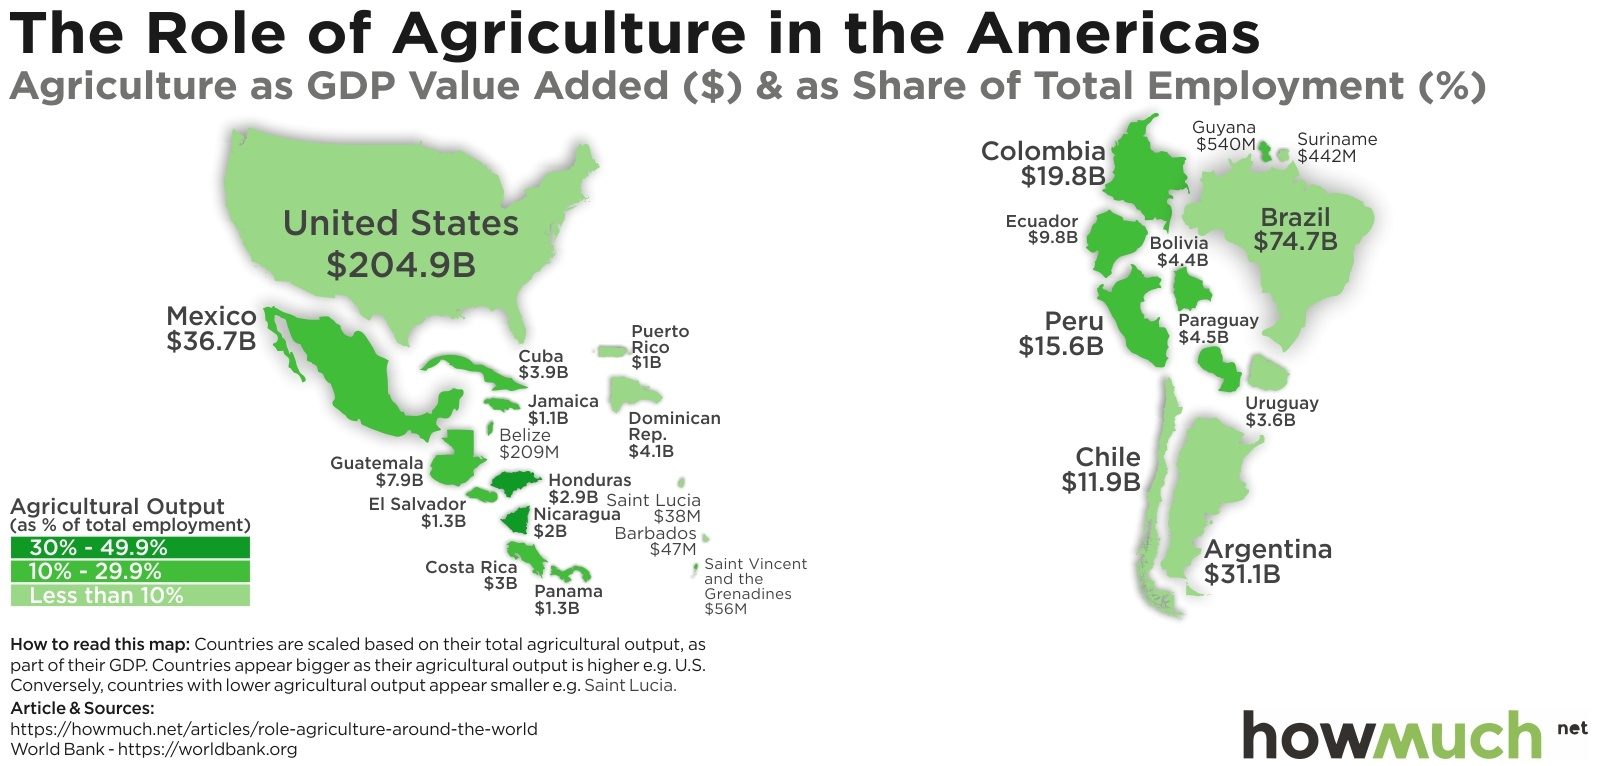 agriculture as a share of GDP in america